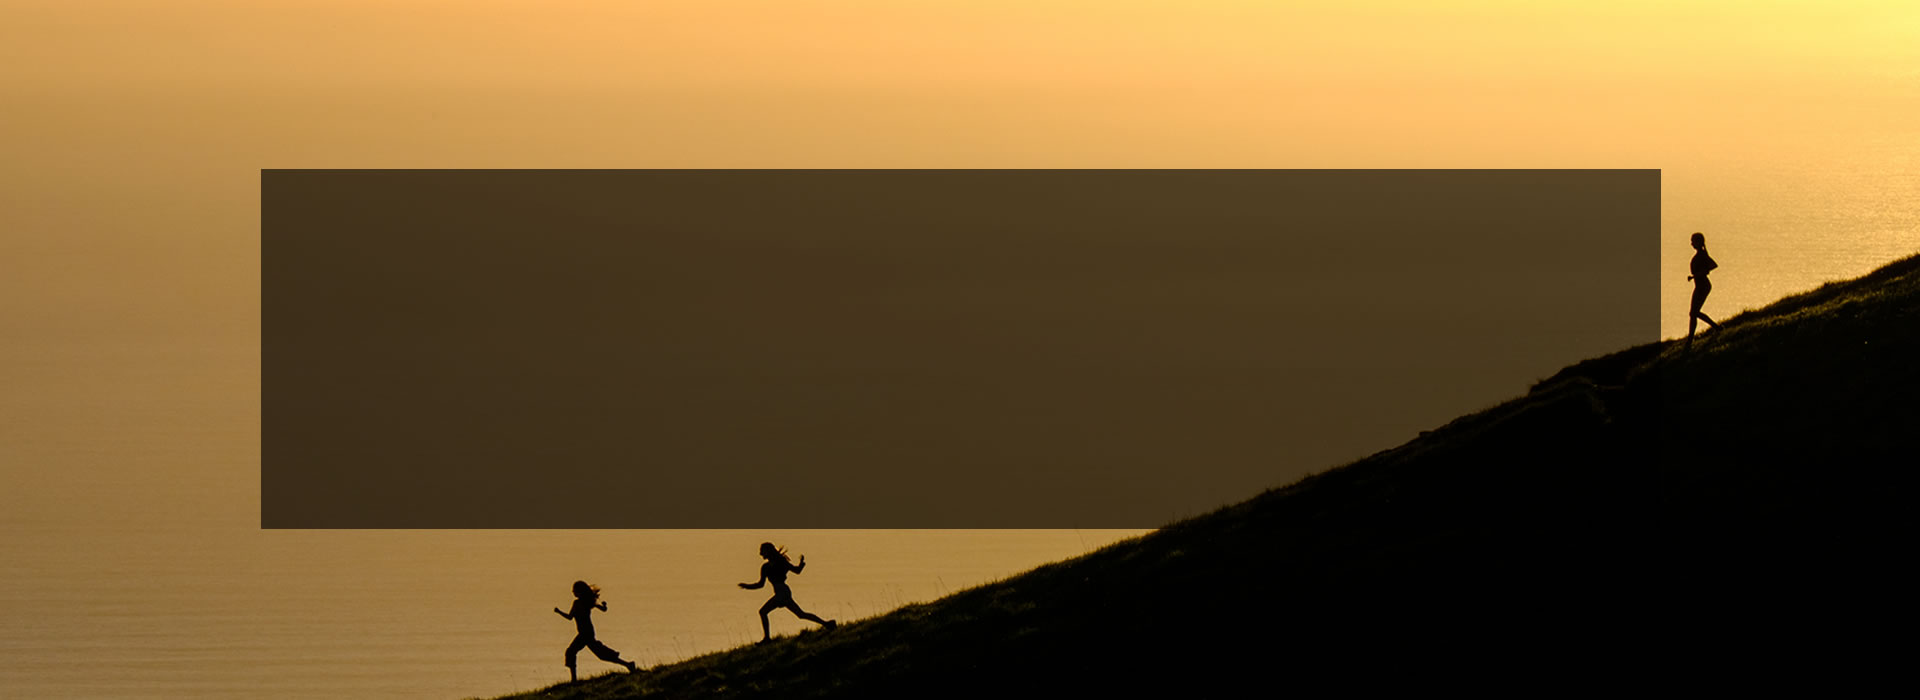 Are you a runner?